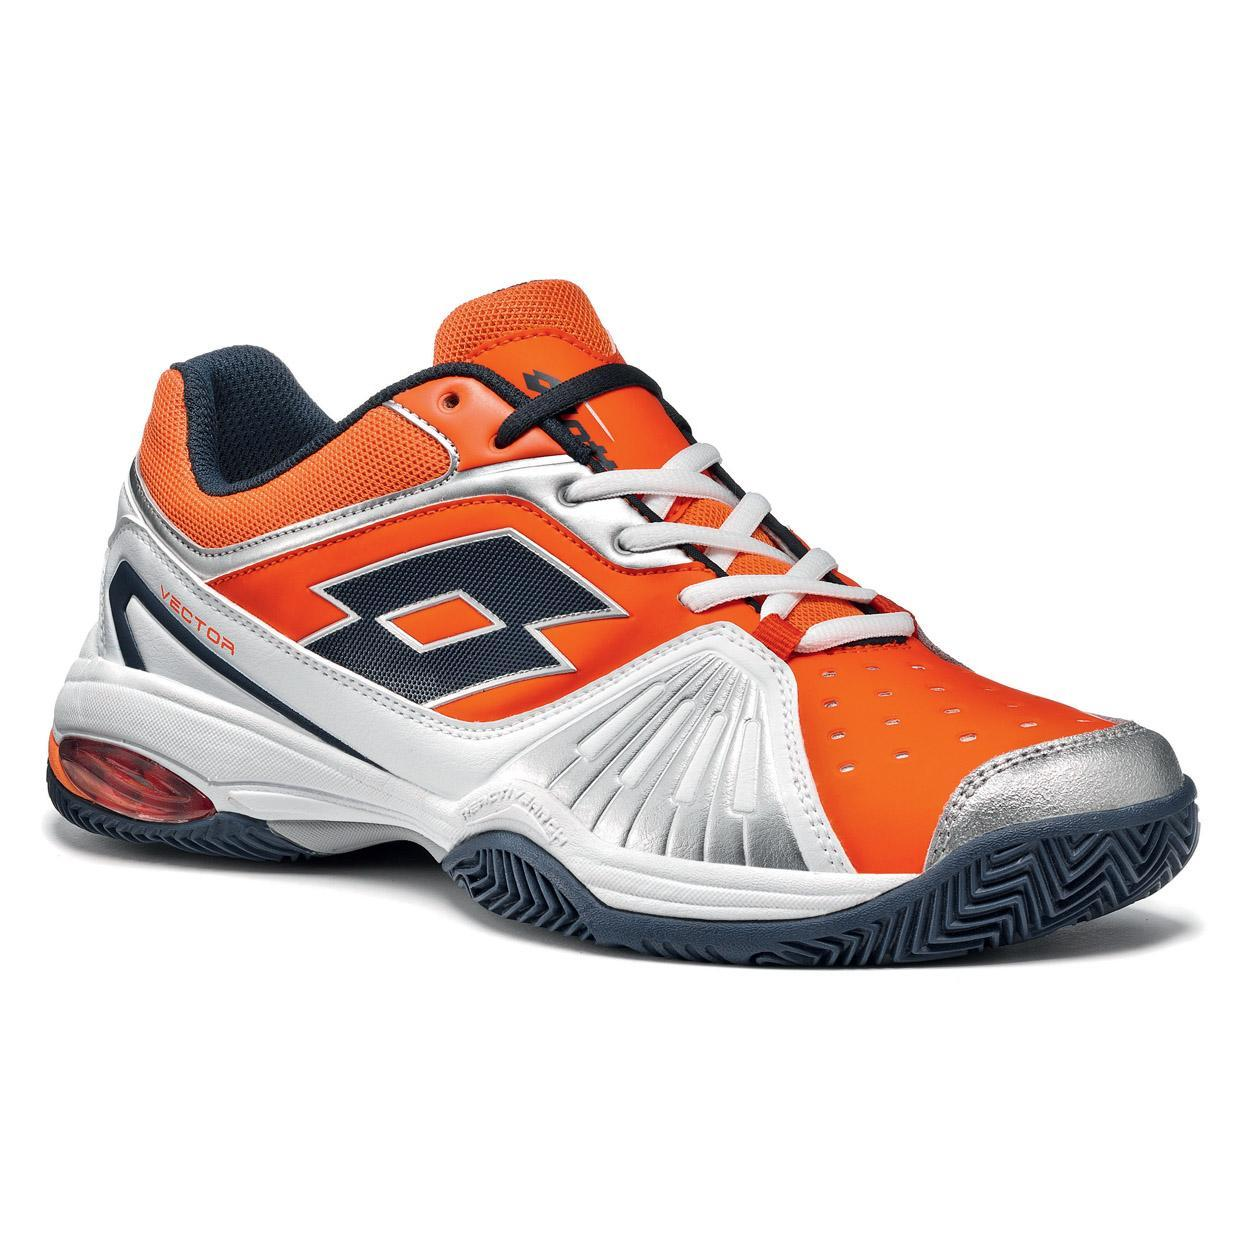 Lotto Sport Italia - Footwear, clothing and